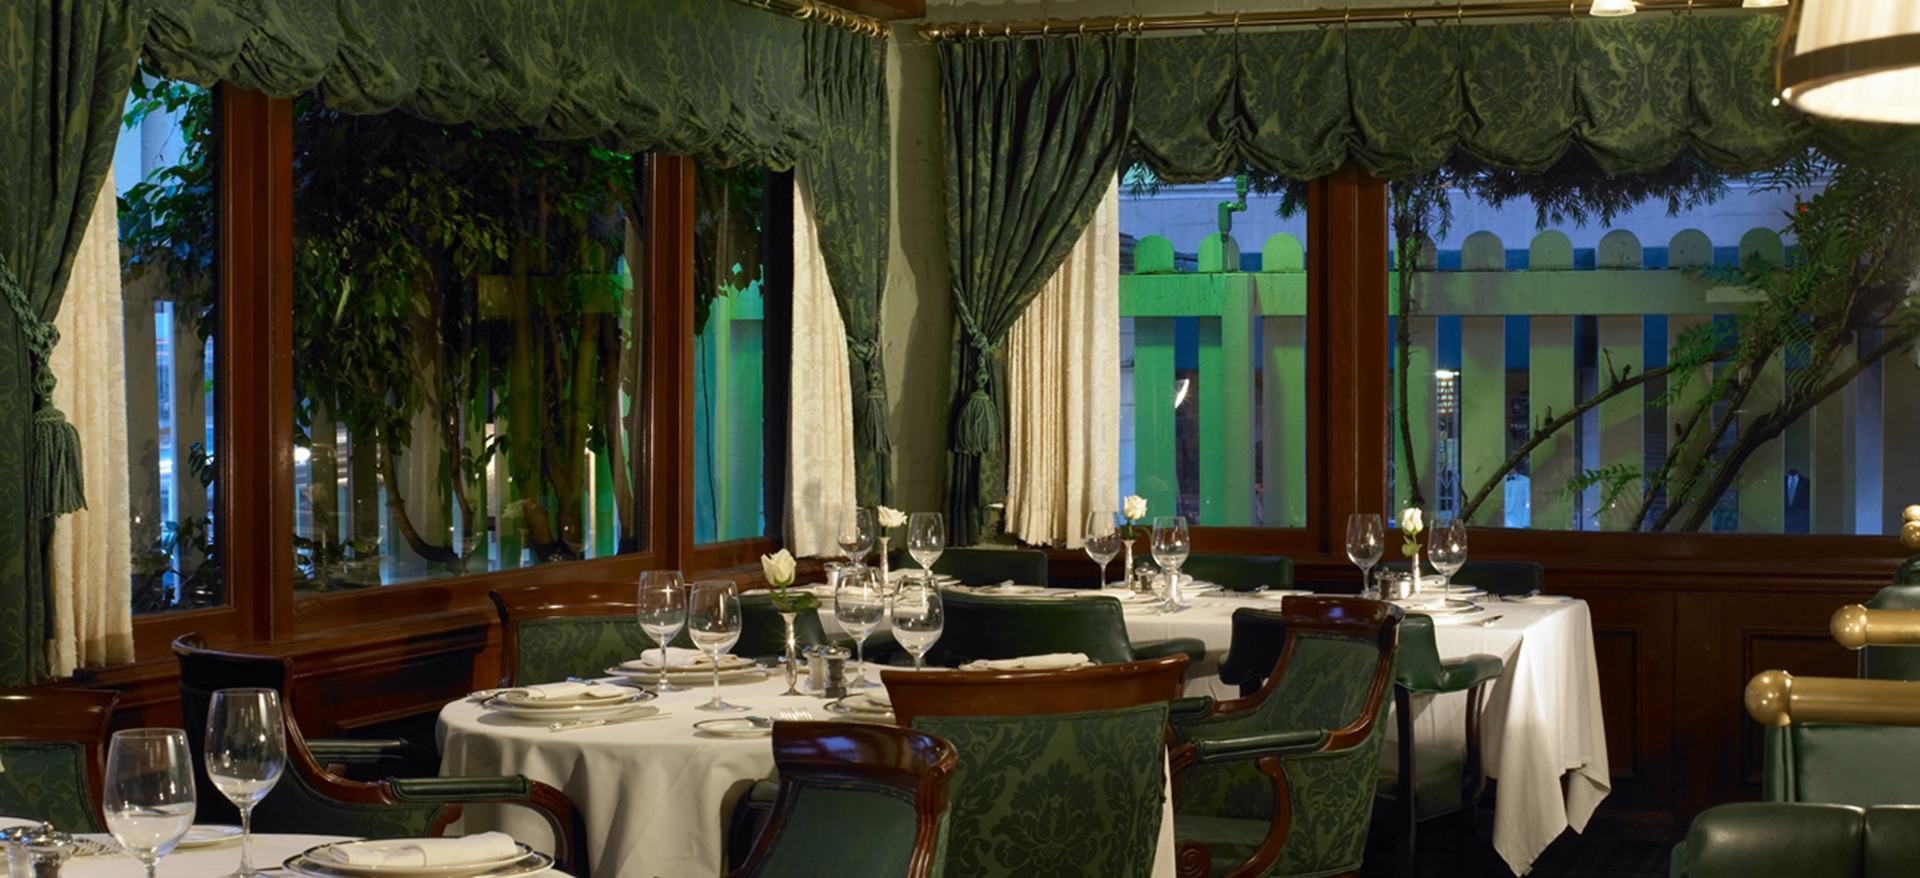 Pacific Dining Car - LA Huntington Room